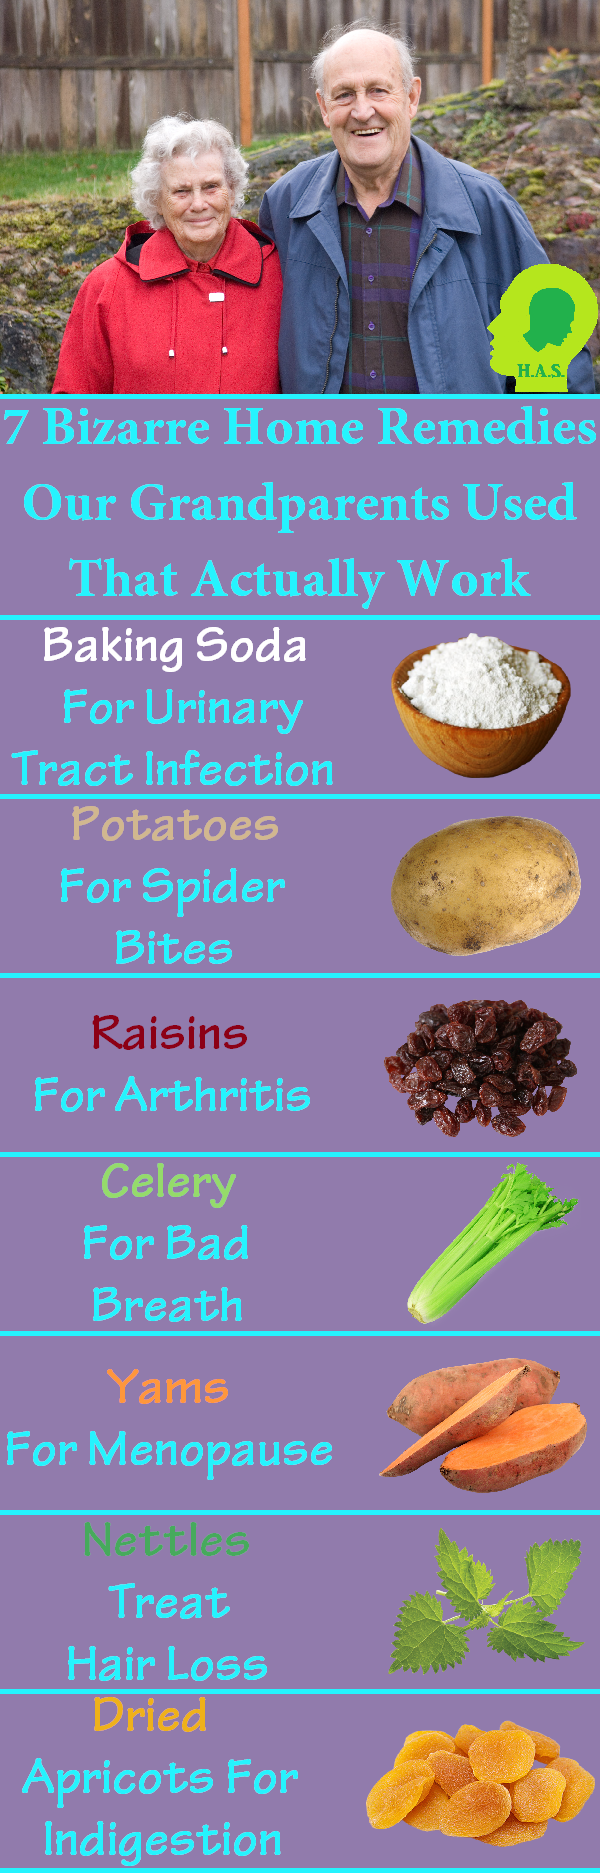 Caution on the baking soda.  It can cause an imbalance of electrolytes.